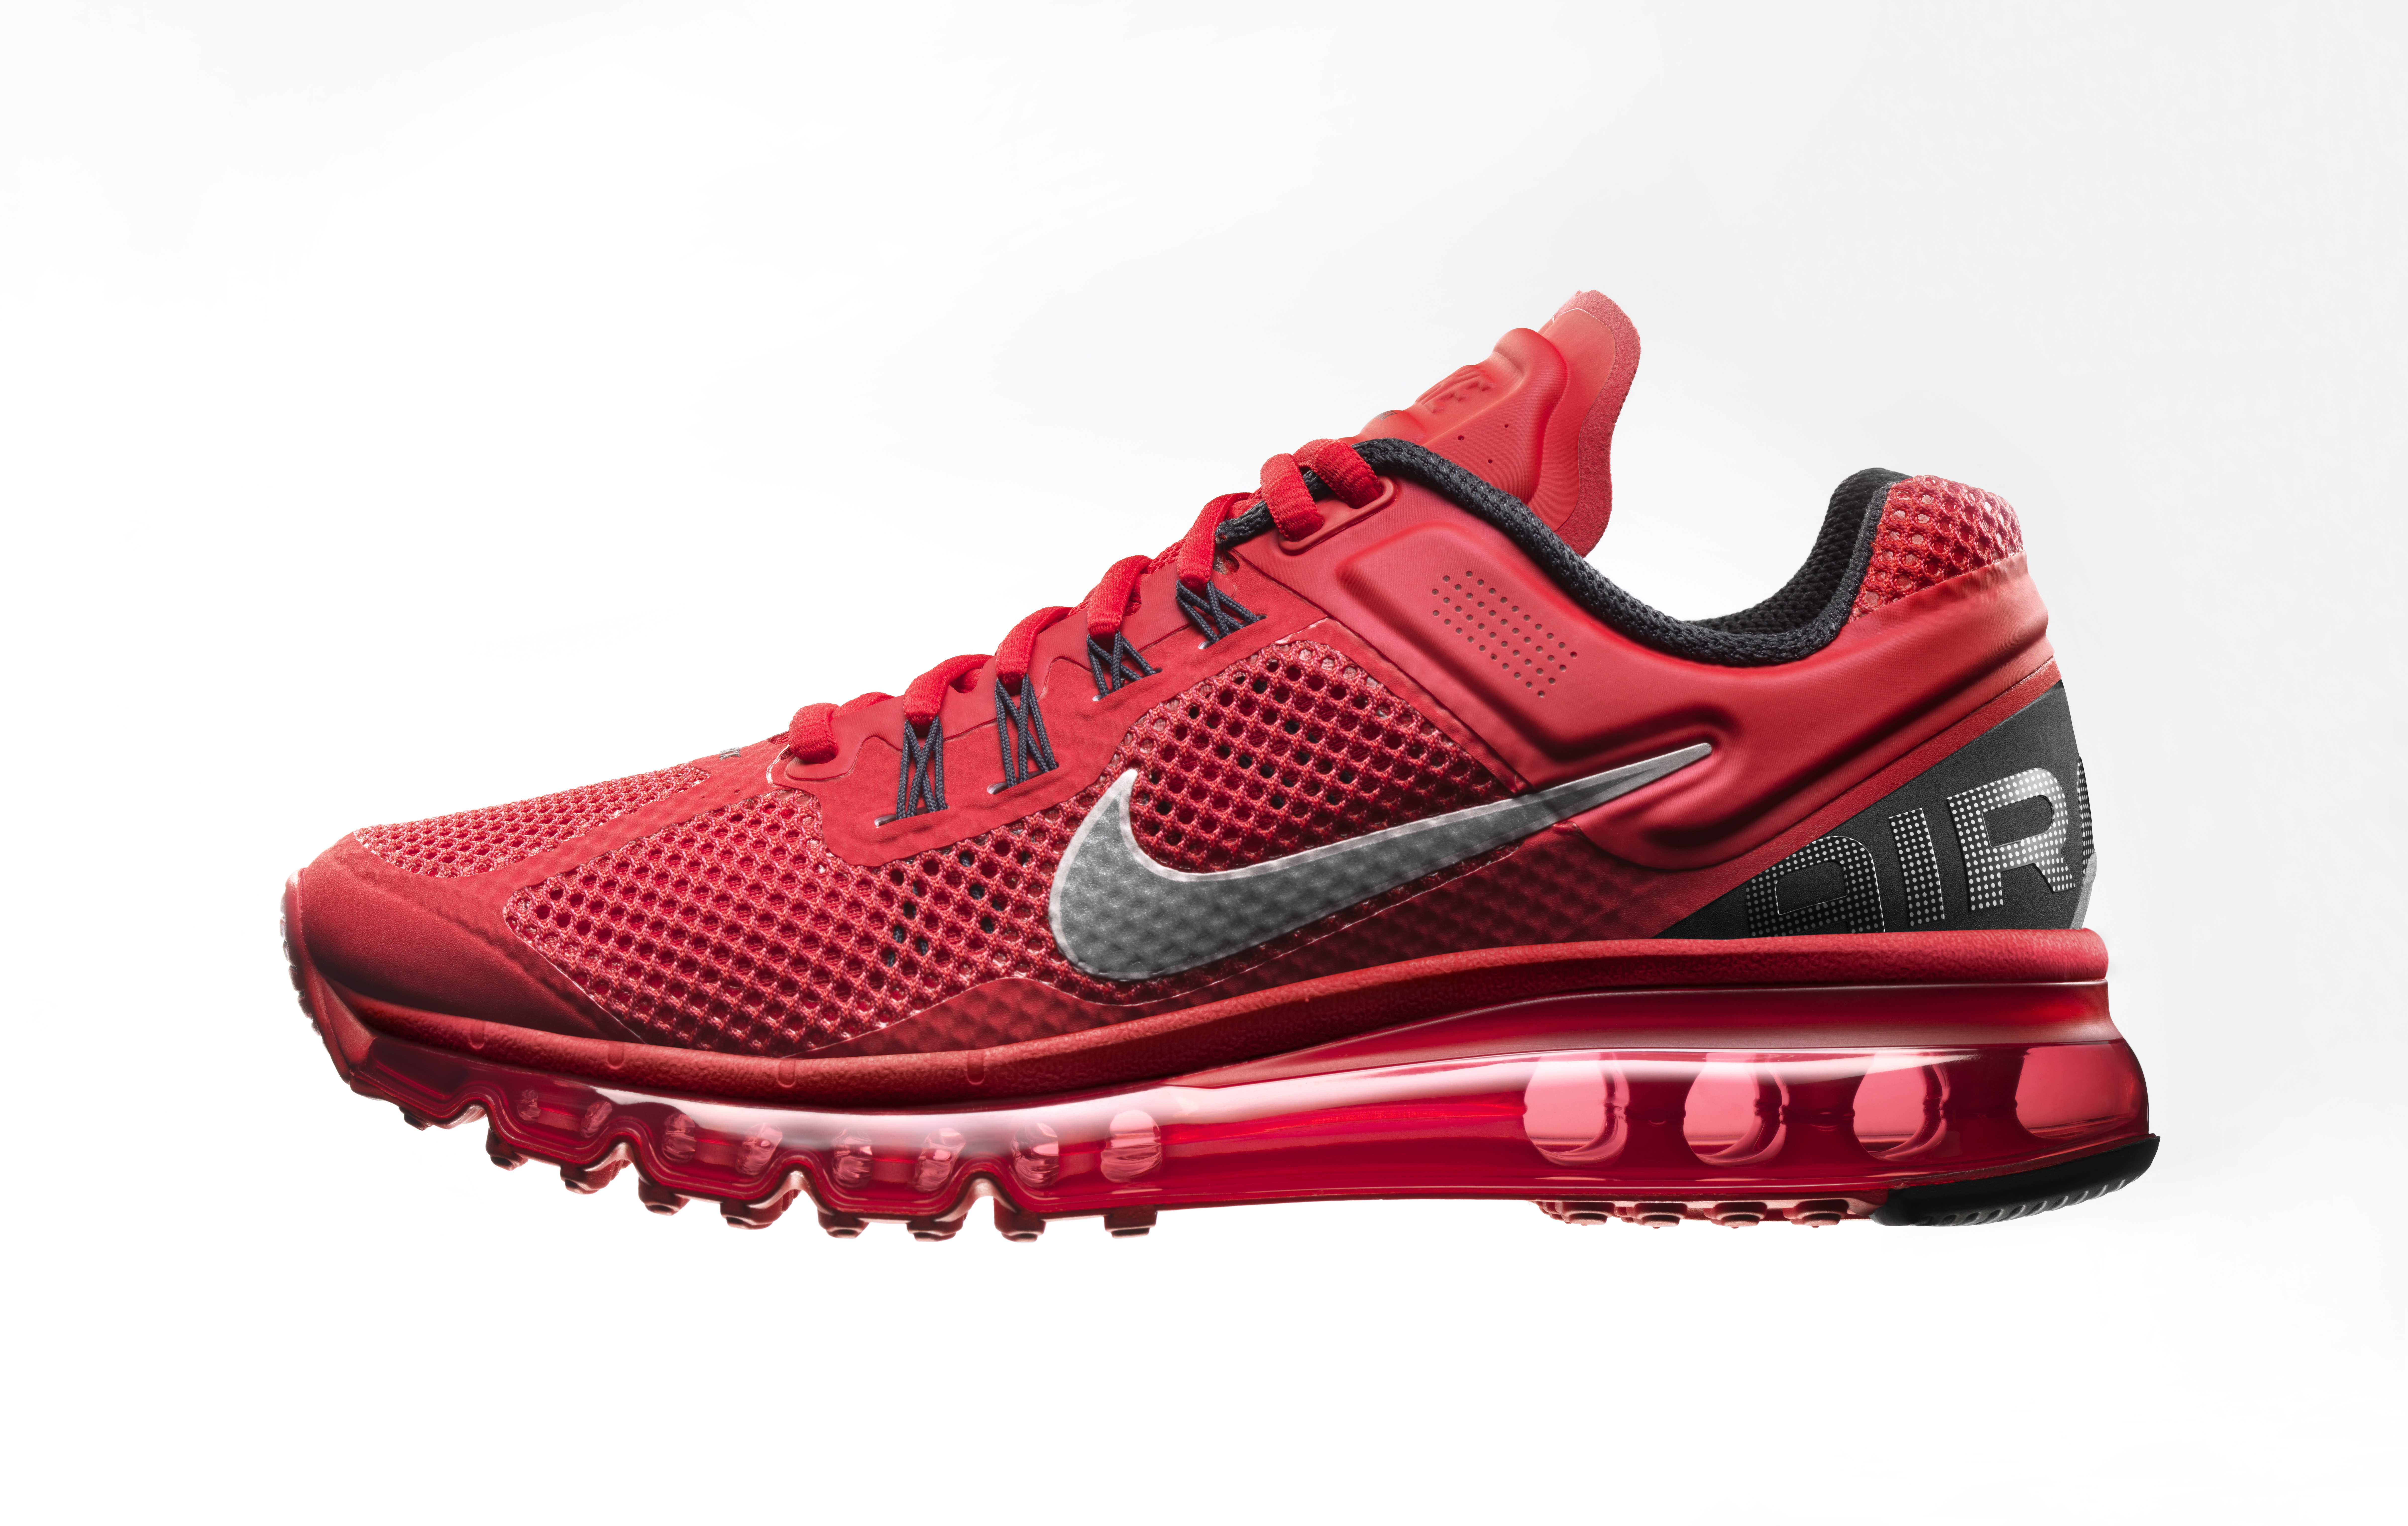 nike air max 2013 homme pas cher allow project.eu